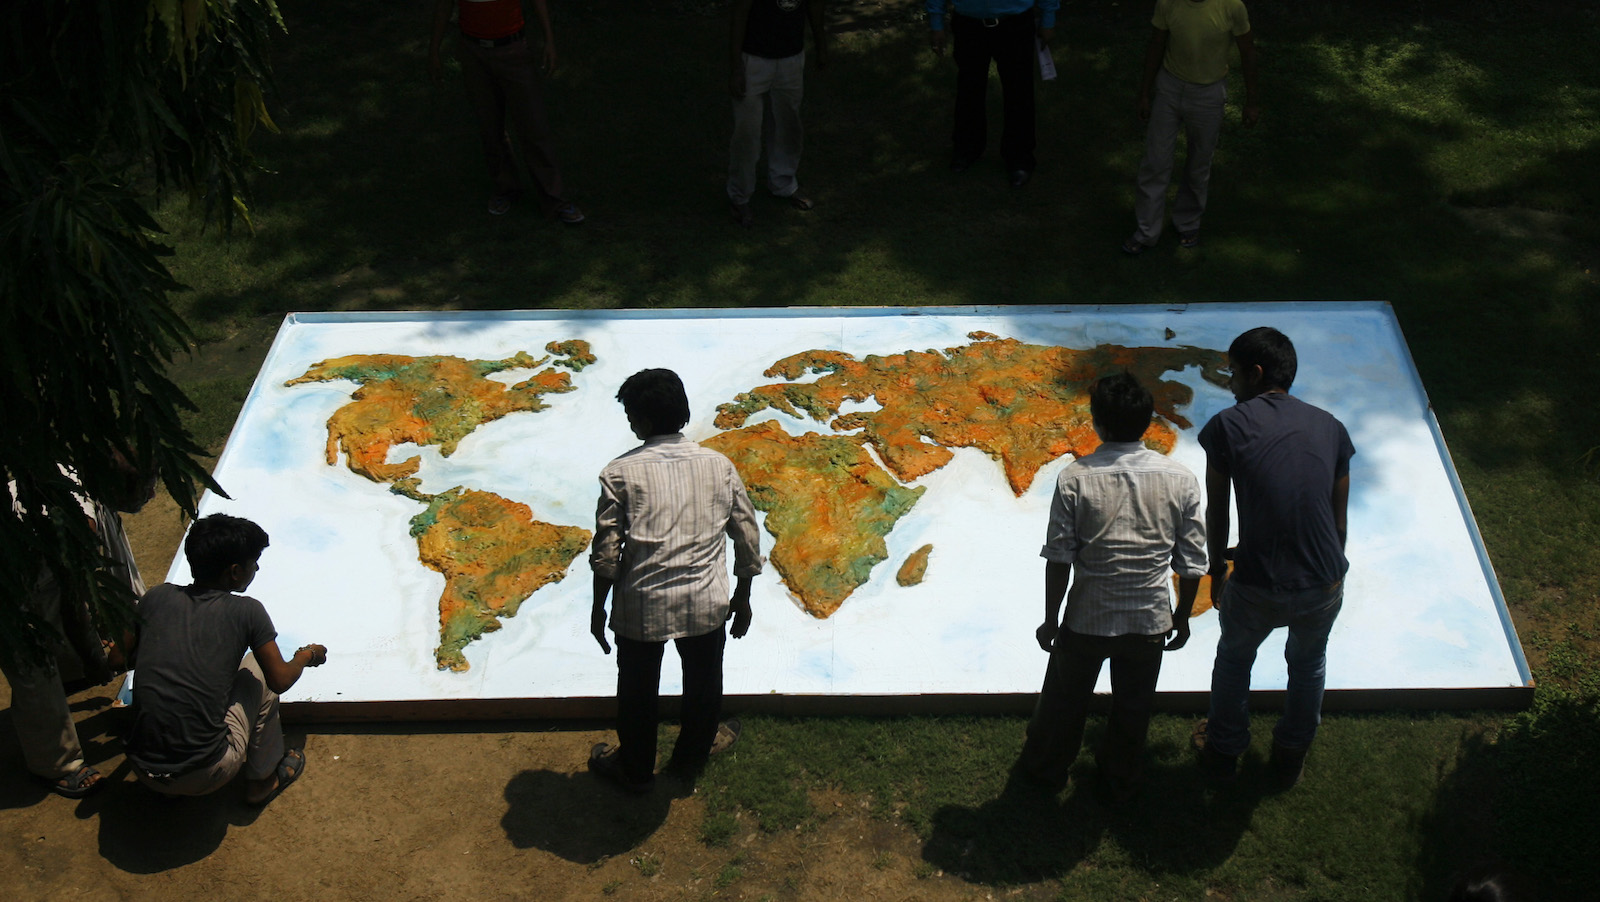 Workers place a hoarding with the world map before the start of a press conference in New Delhi, India, Friday, Aug. 28, 2009. The press conference was organized by various non government organizations to mark the hundred days countdown to the Copenhagen summit. (AP Photo/Manish Swarup)